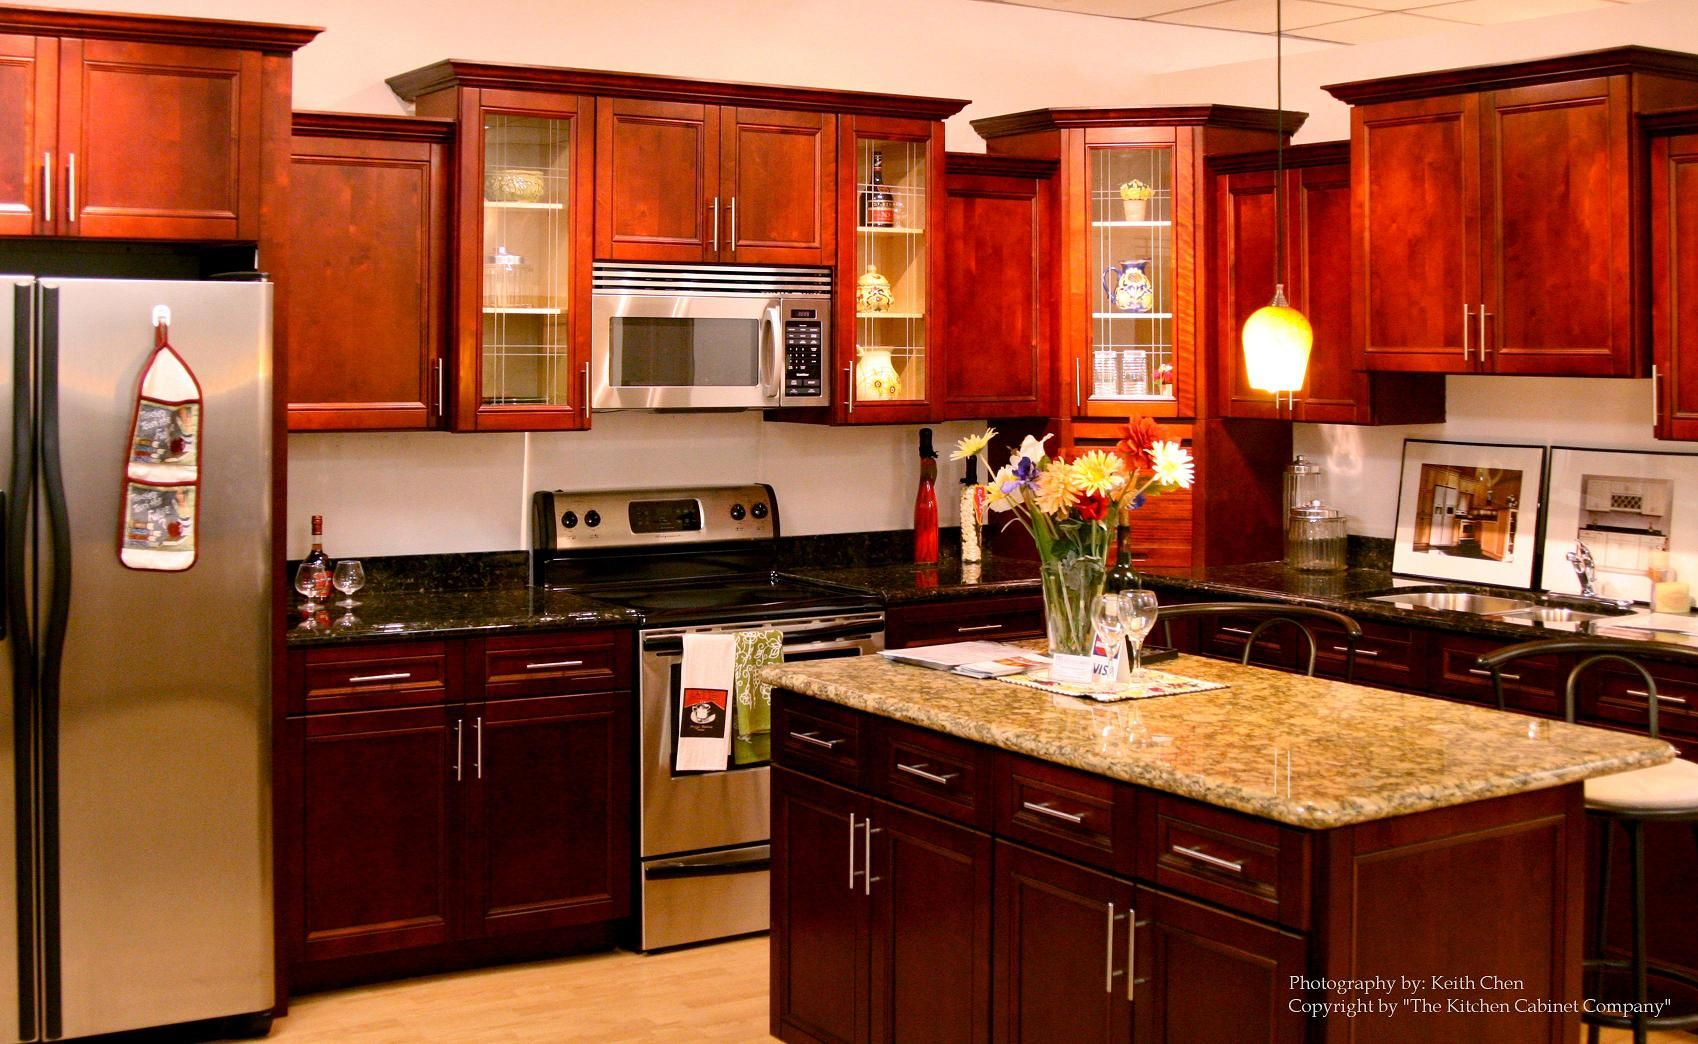 Pin by Haus Design on Kitchens.....   Cherry cabinets kitchen ...